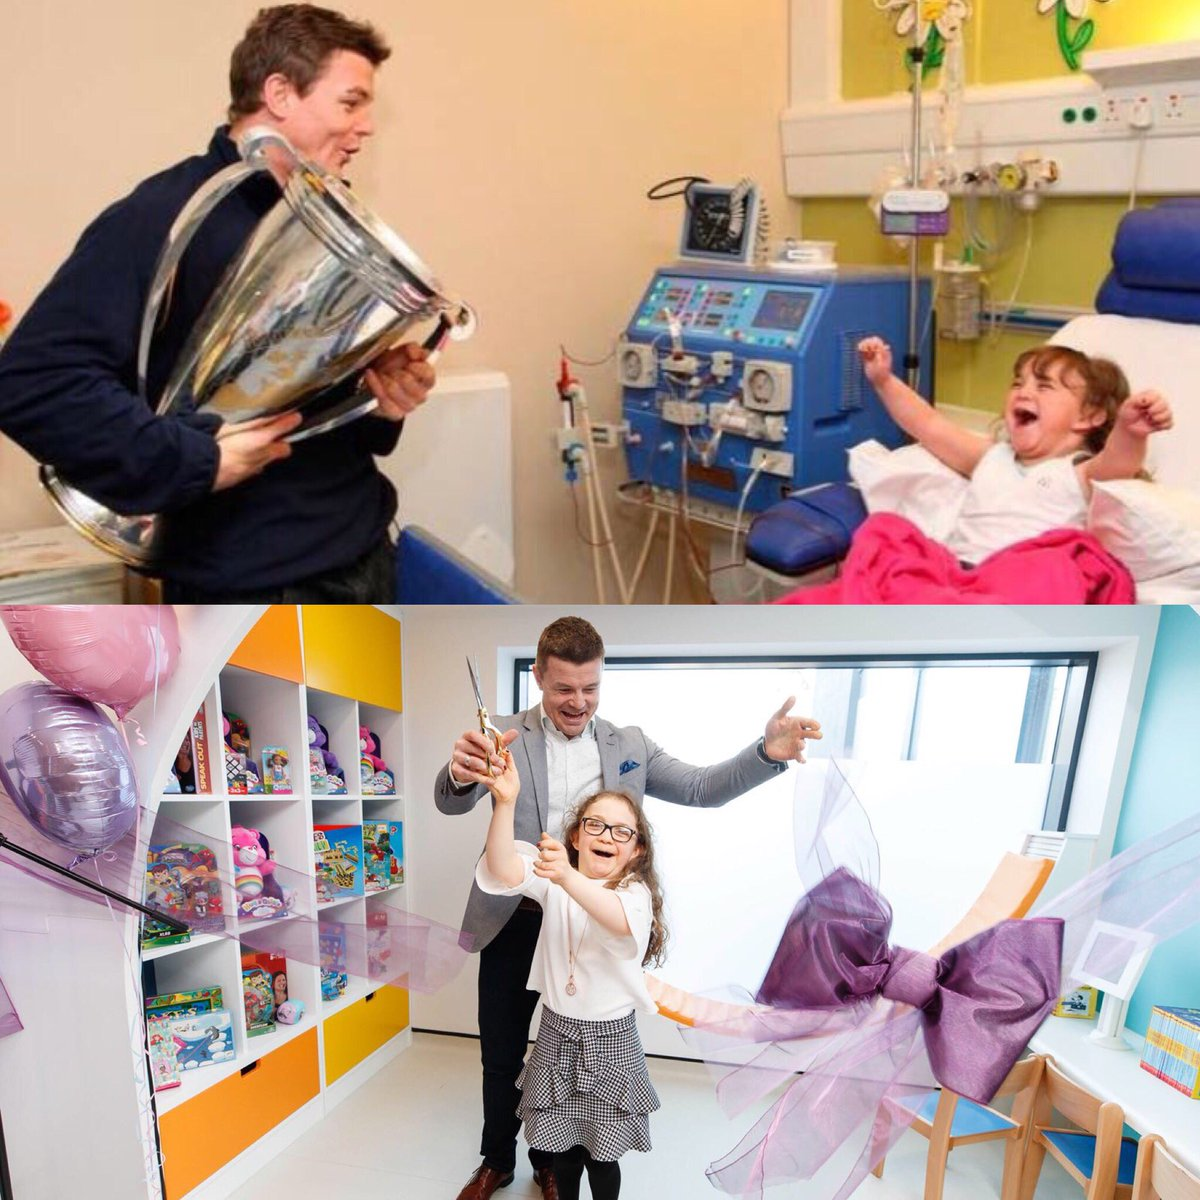 Always great to catch up with my little buddy Michaela Morley who is better than ever - at the opening of the new Renal & Neurology Outpatient Units  ear@Temple_Streetlier today. Thanks you to all the incredibly generous donors who helped make this happen.